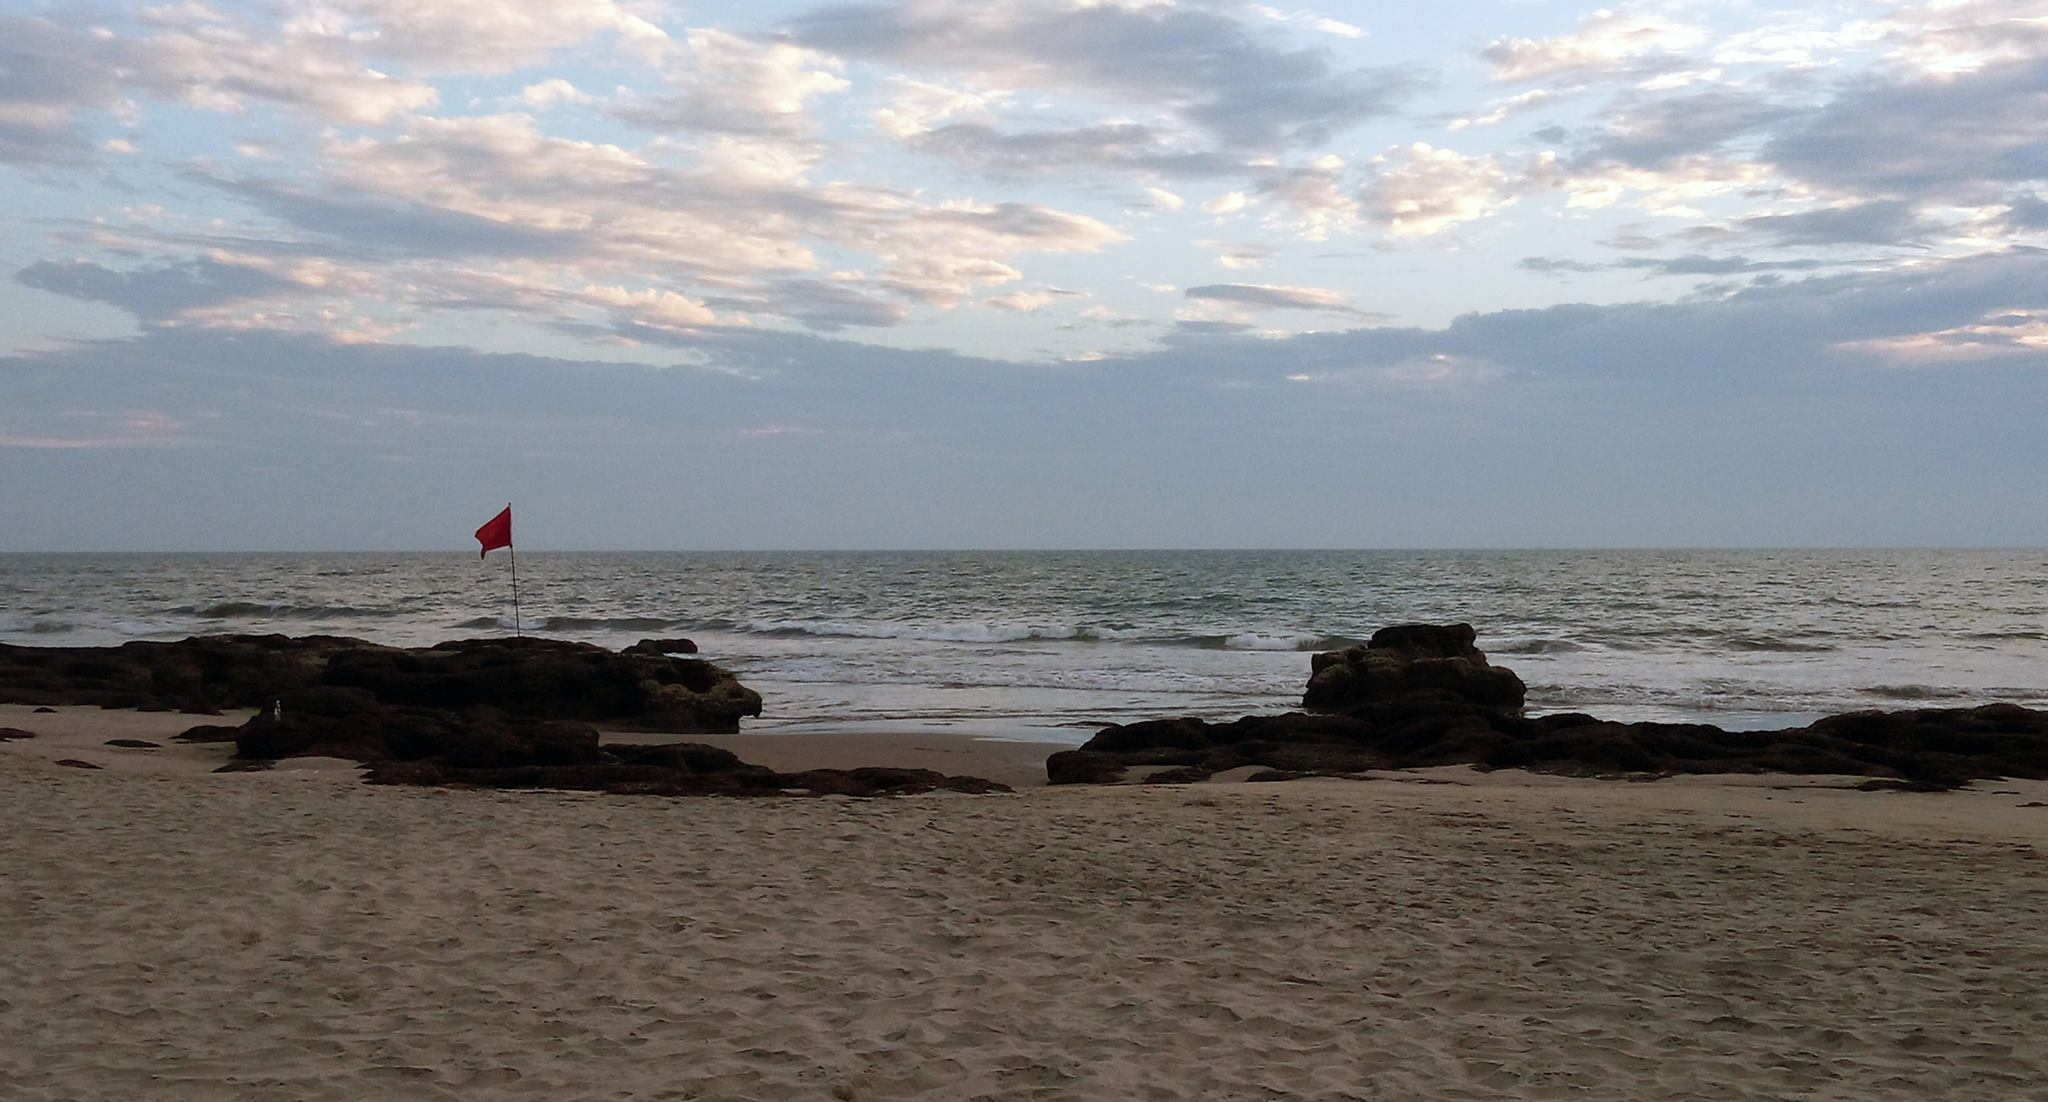 The Red Flag by the Blue Sea